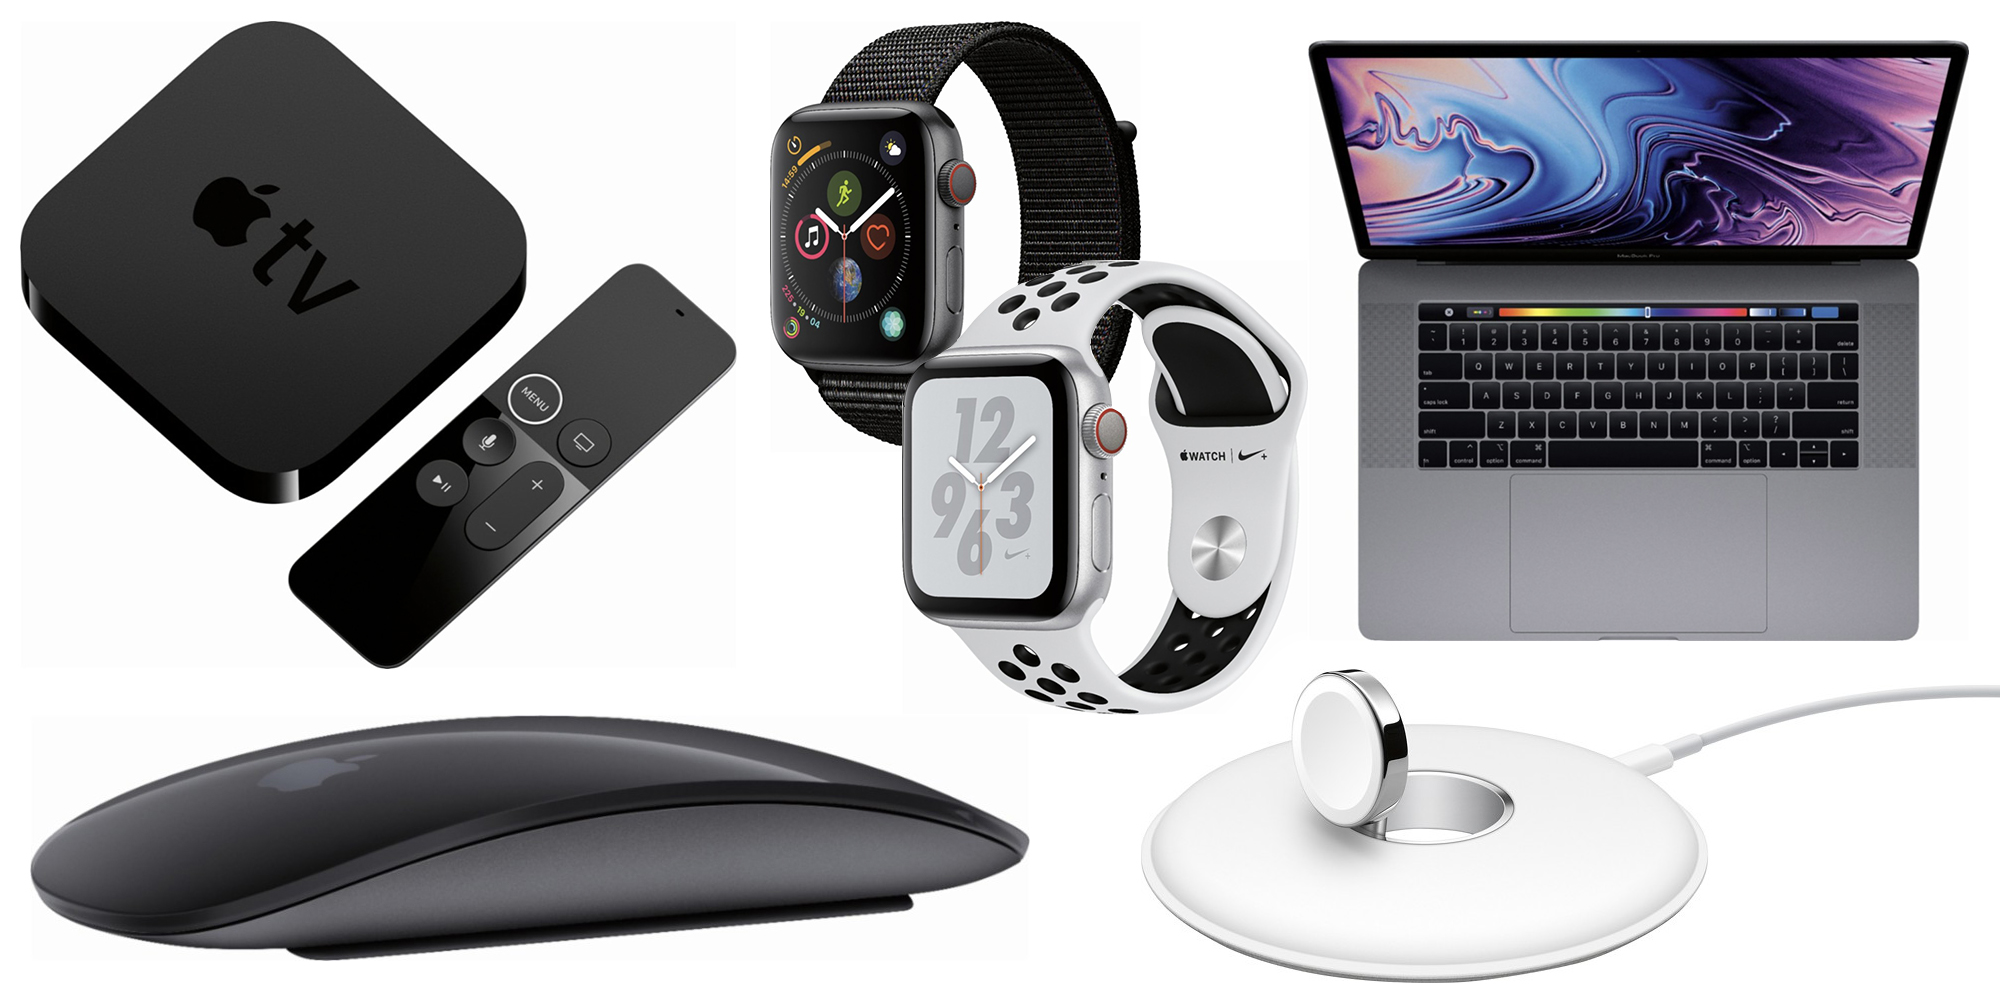 Best Buy's Apple open-box sale includes rarely discounted accessories + Apple Watch Series 4